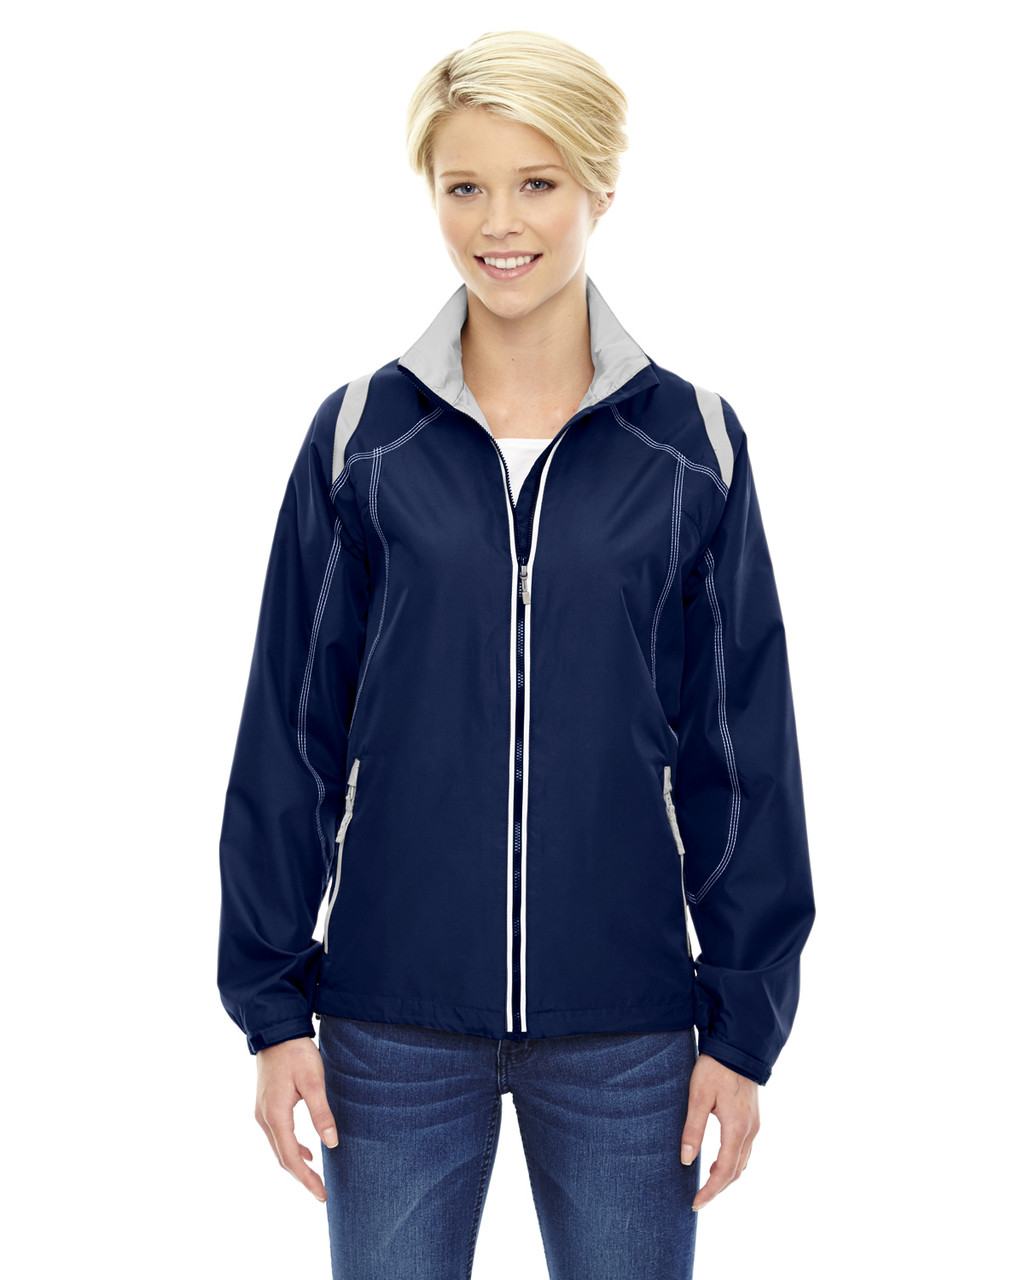 Night - 78076 North Ladies' Lightweight Colour-Block Jacket | Blankclothing.ca